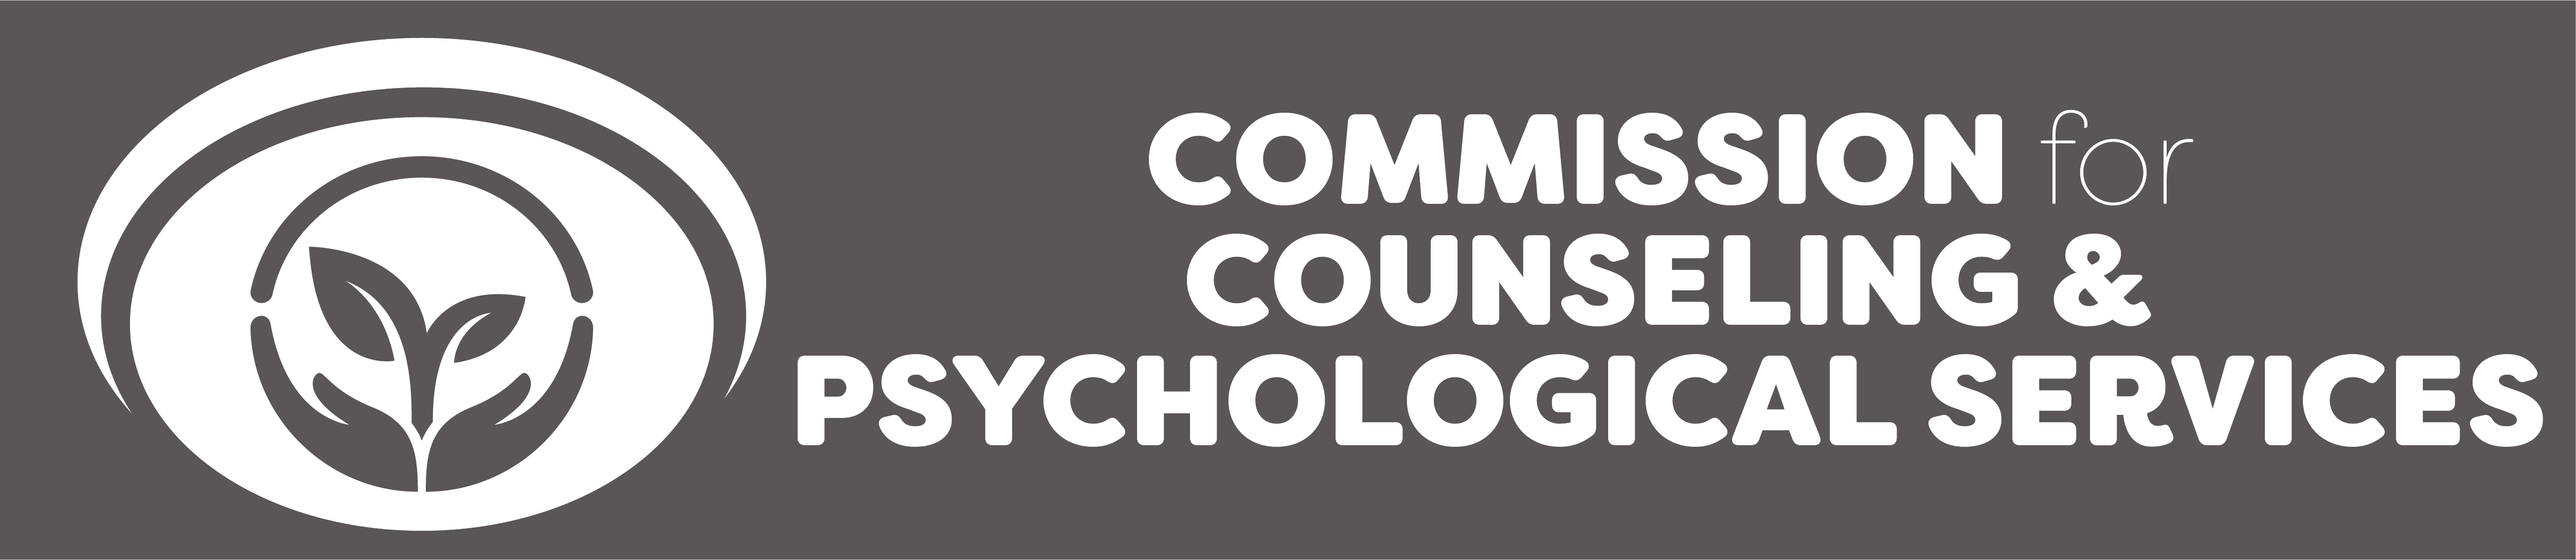 commission for counseling & psychological services